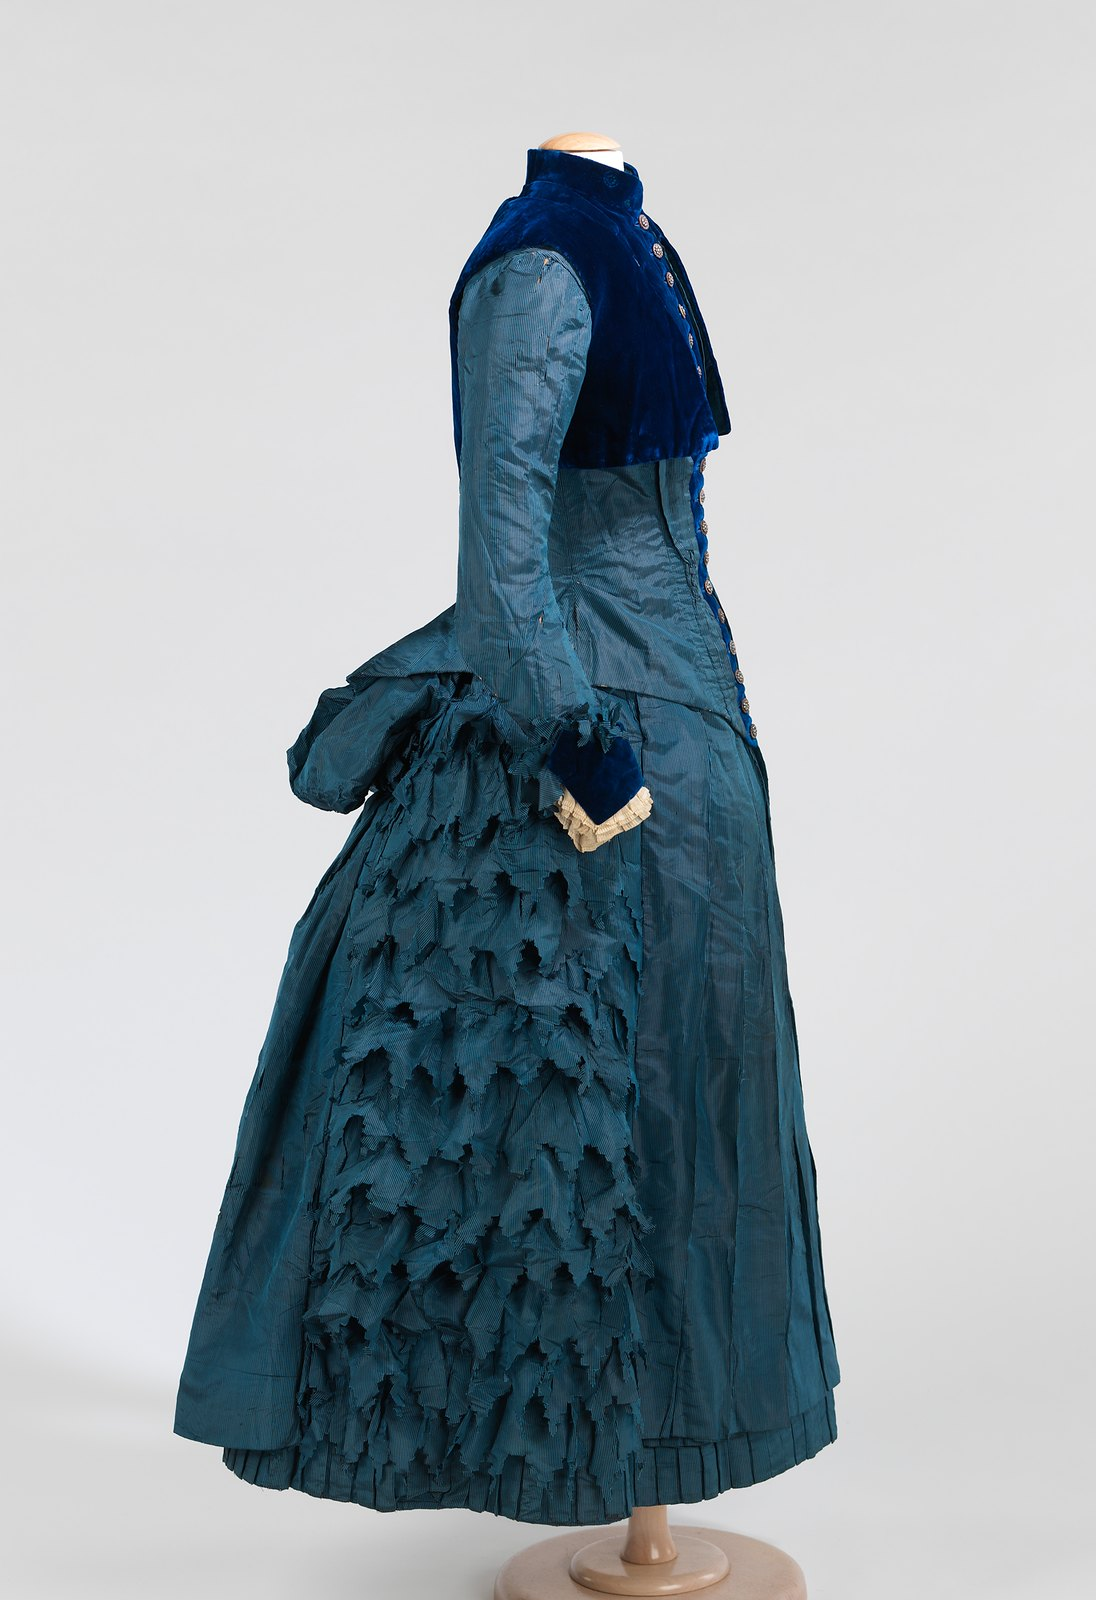 c. 1885. American. Silk, cotton. metmuseum